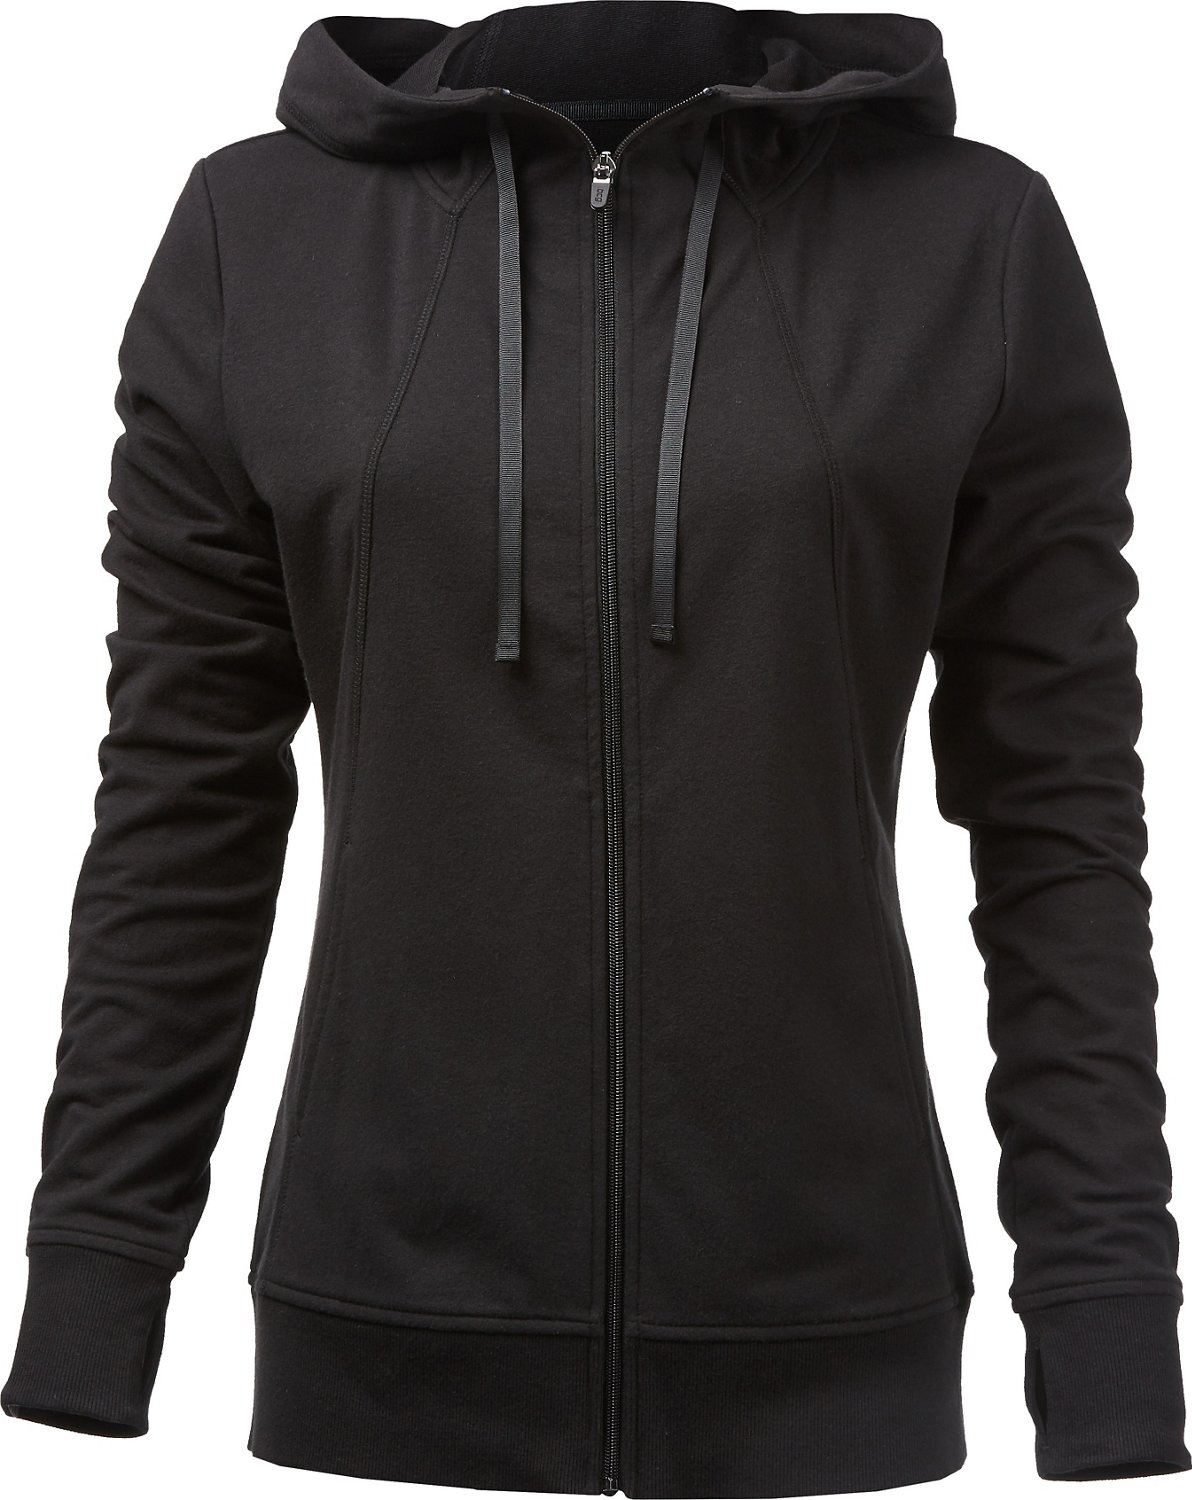 f18acfde3cdb Display product reviews for BCG Women s Full Zip Long Sleeve Hoodie